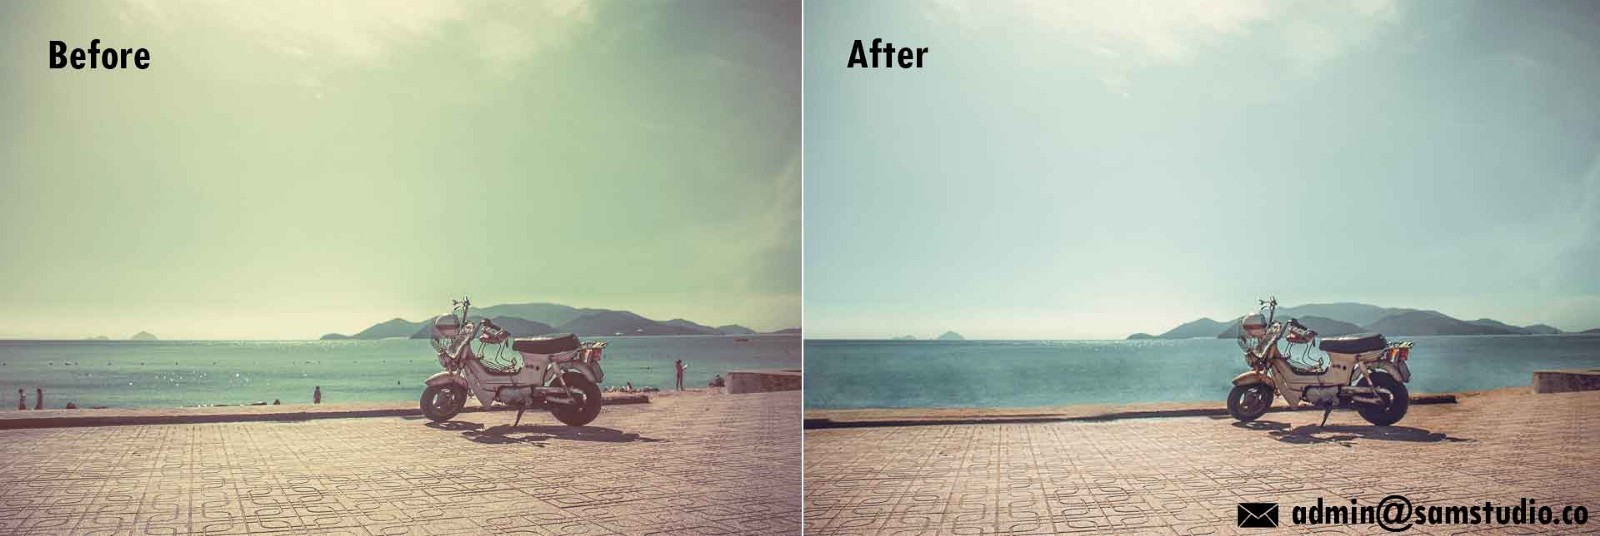 Image restoration Services | Outsource Photo Restoration to